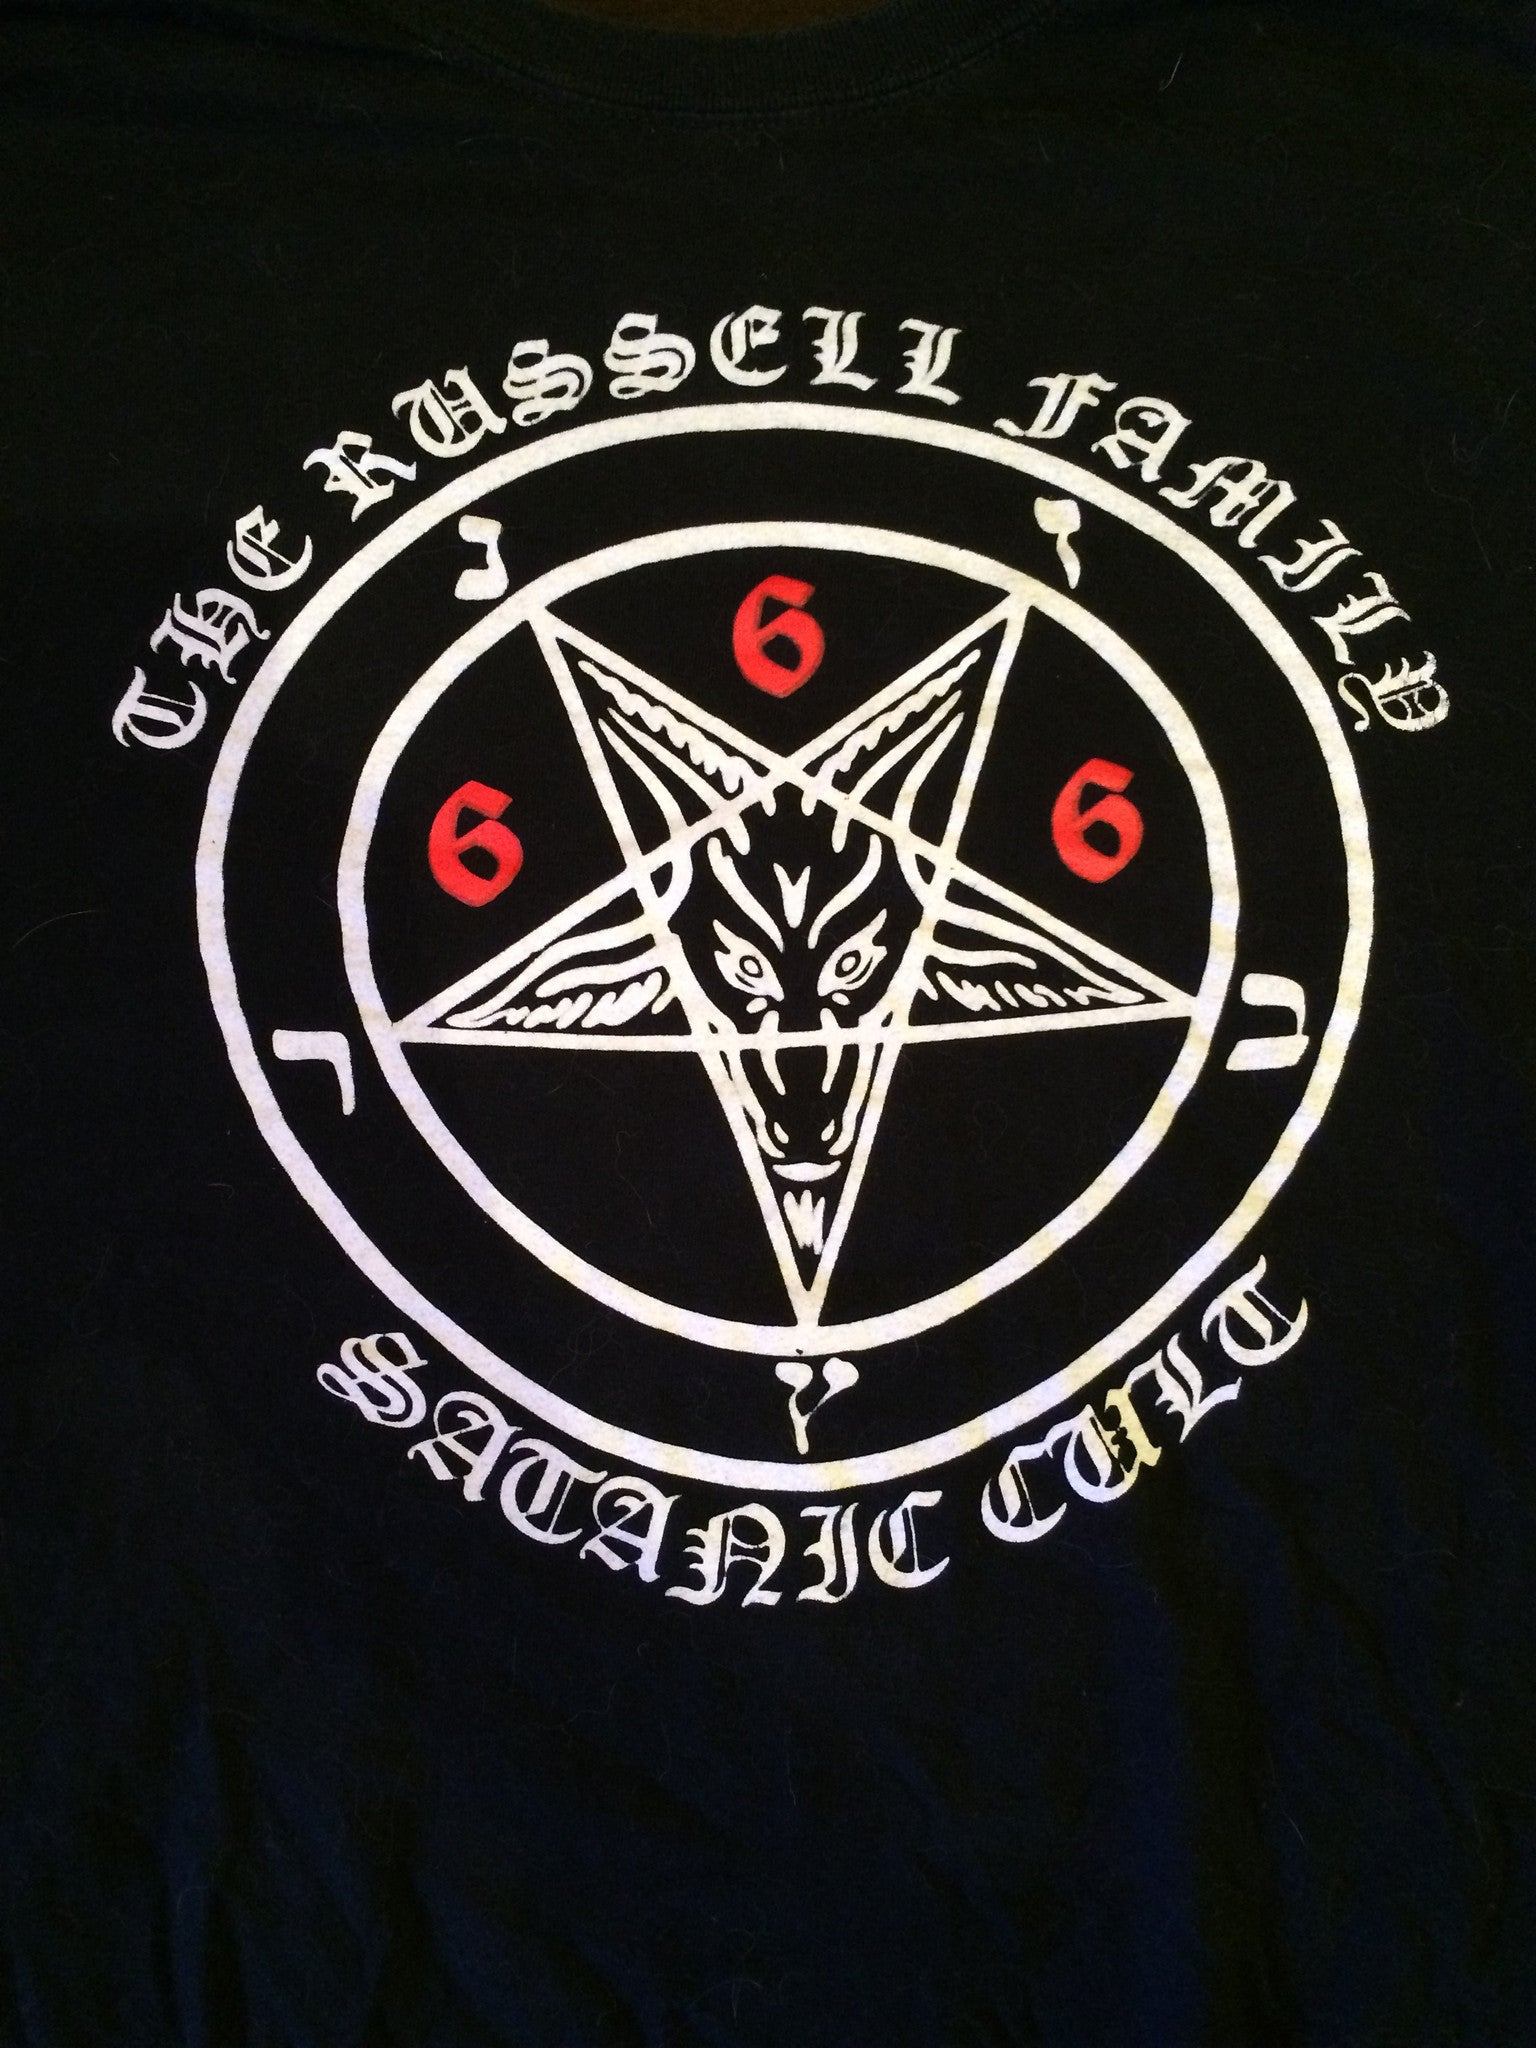 Cemetary Desekrator-The Russel Family Satanic Cult (LARGE SHIRT)